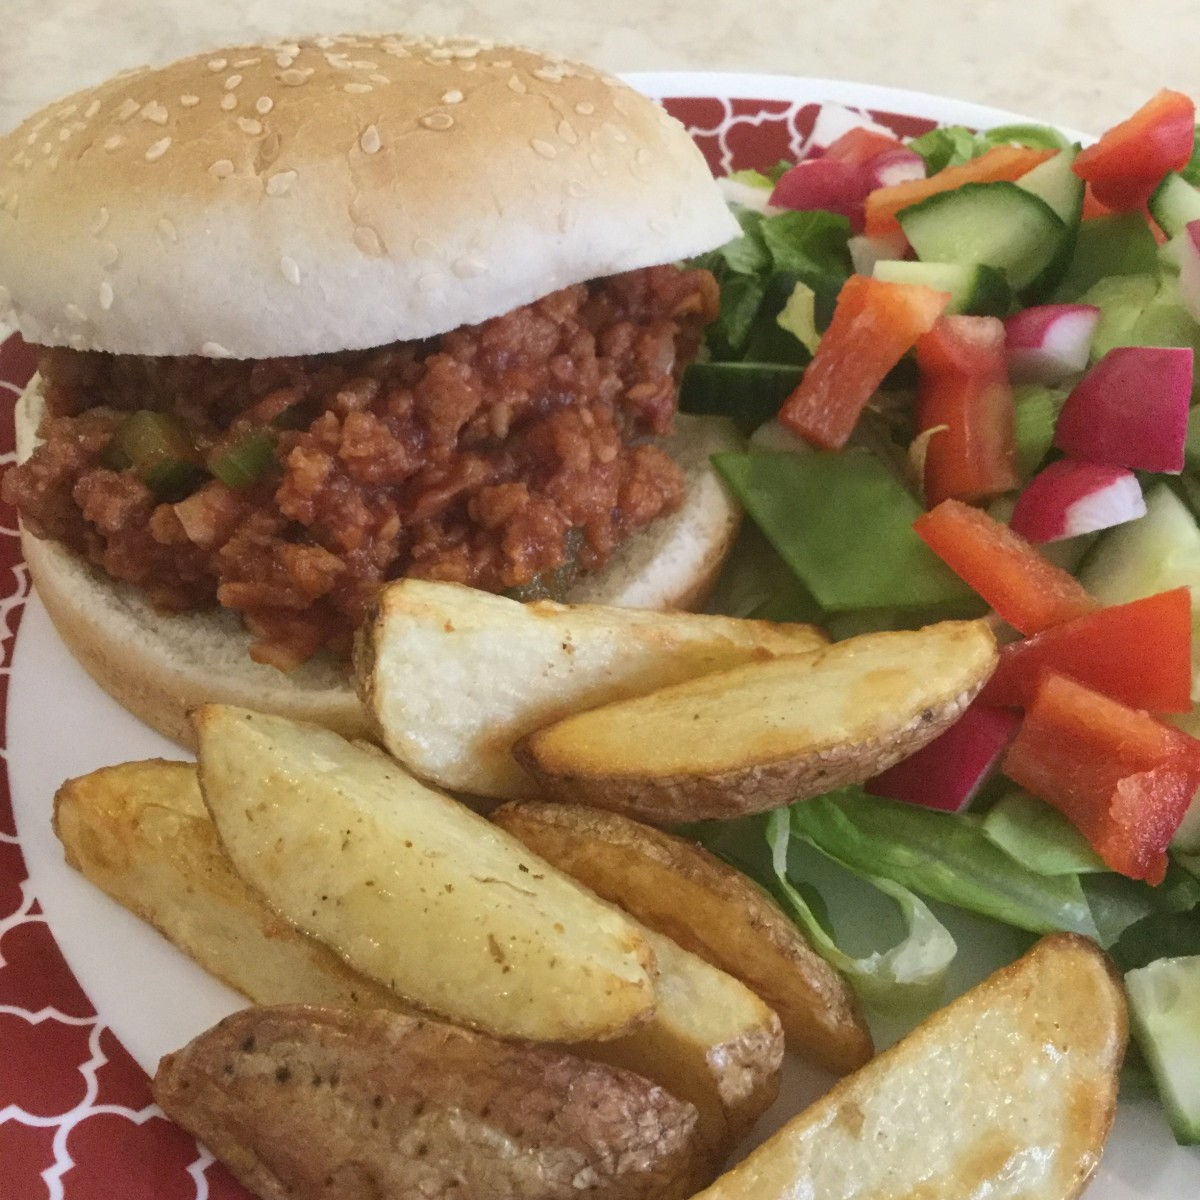 Vegan Sloppy Joe's, served with potato wedges and a green salad.